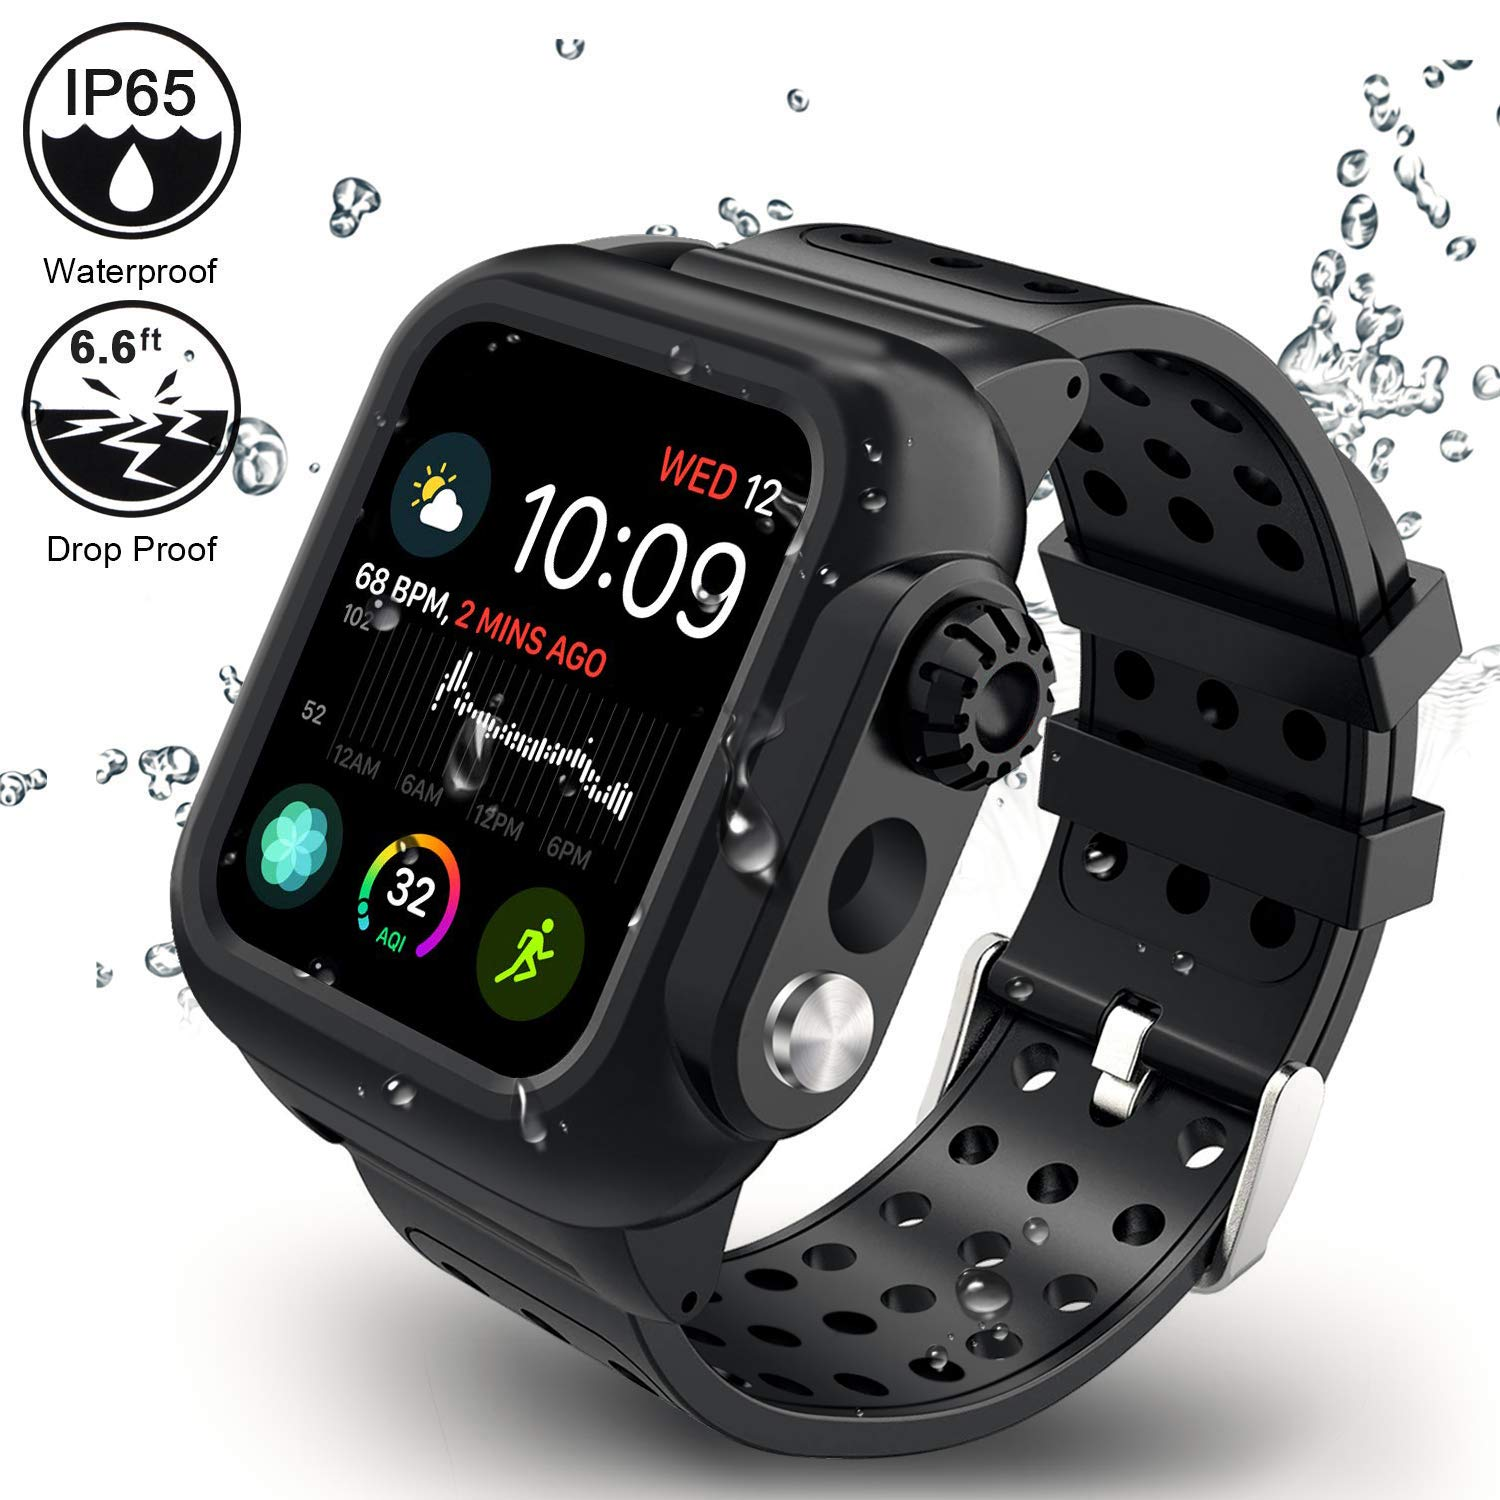 Twinkk Waterproof Case Compatible for Apple Watch Series 4 40mm with Built-in Screen Protector and Silicone Watch Band-Black